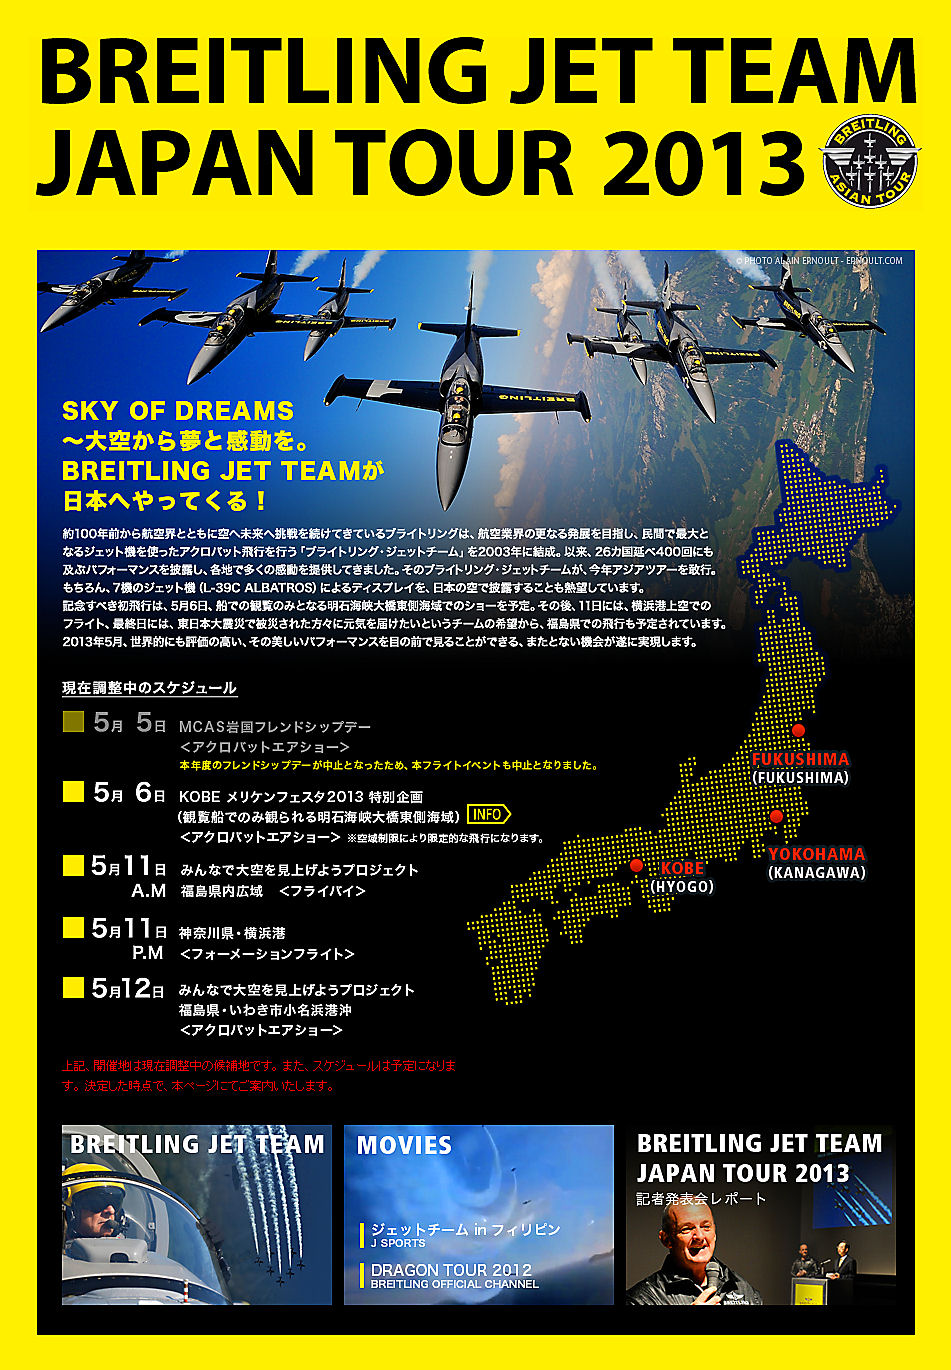 BREITLING JET TEAM JAPAN TOUR 2013 in KOBE